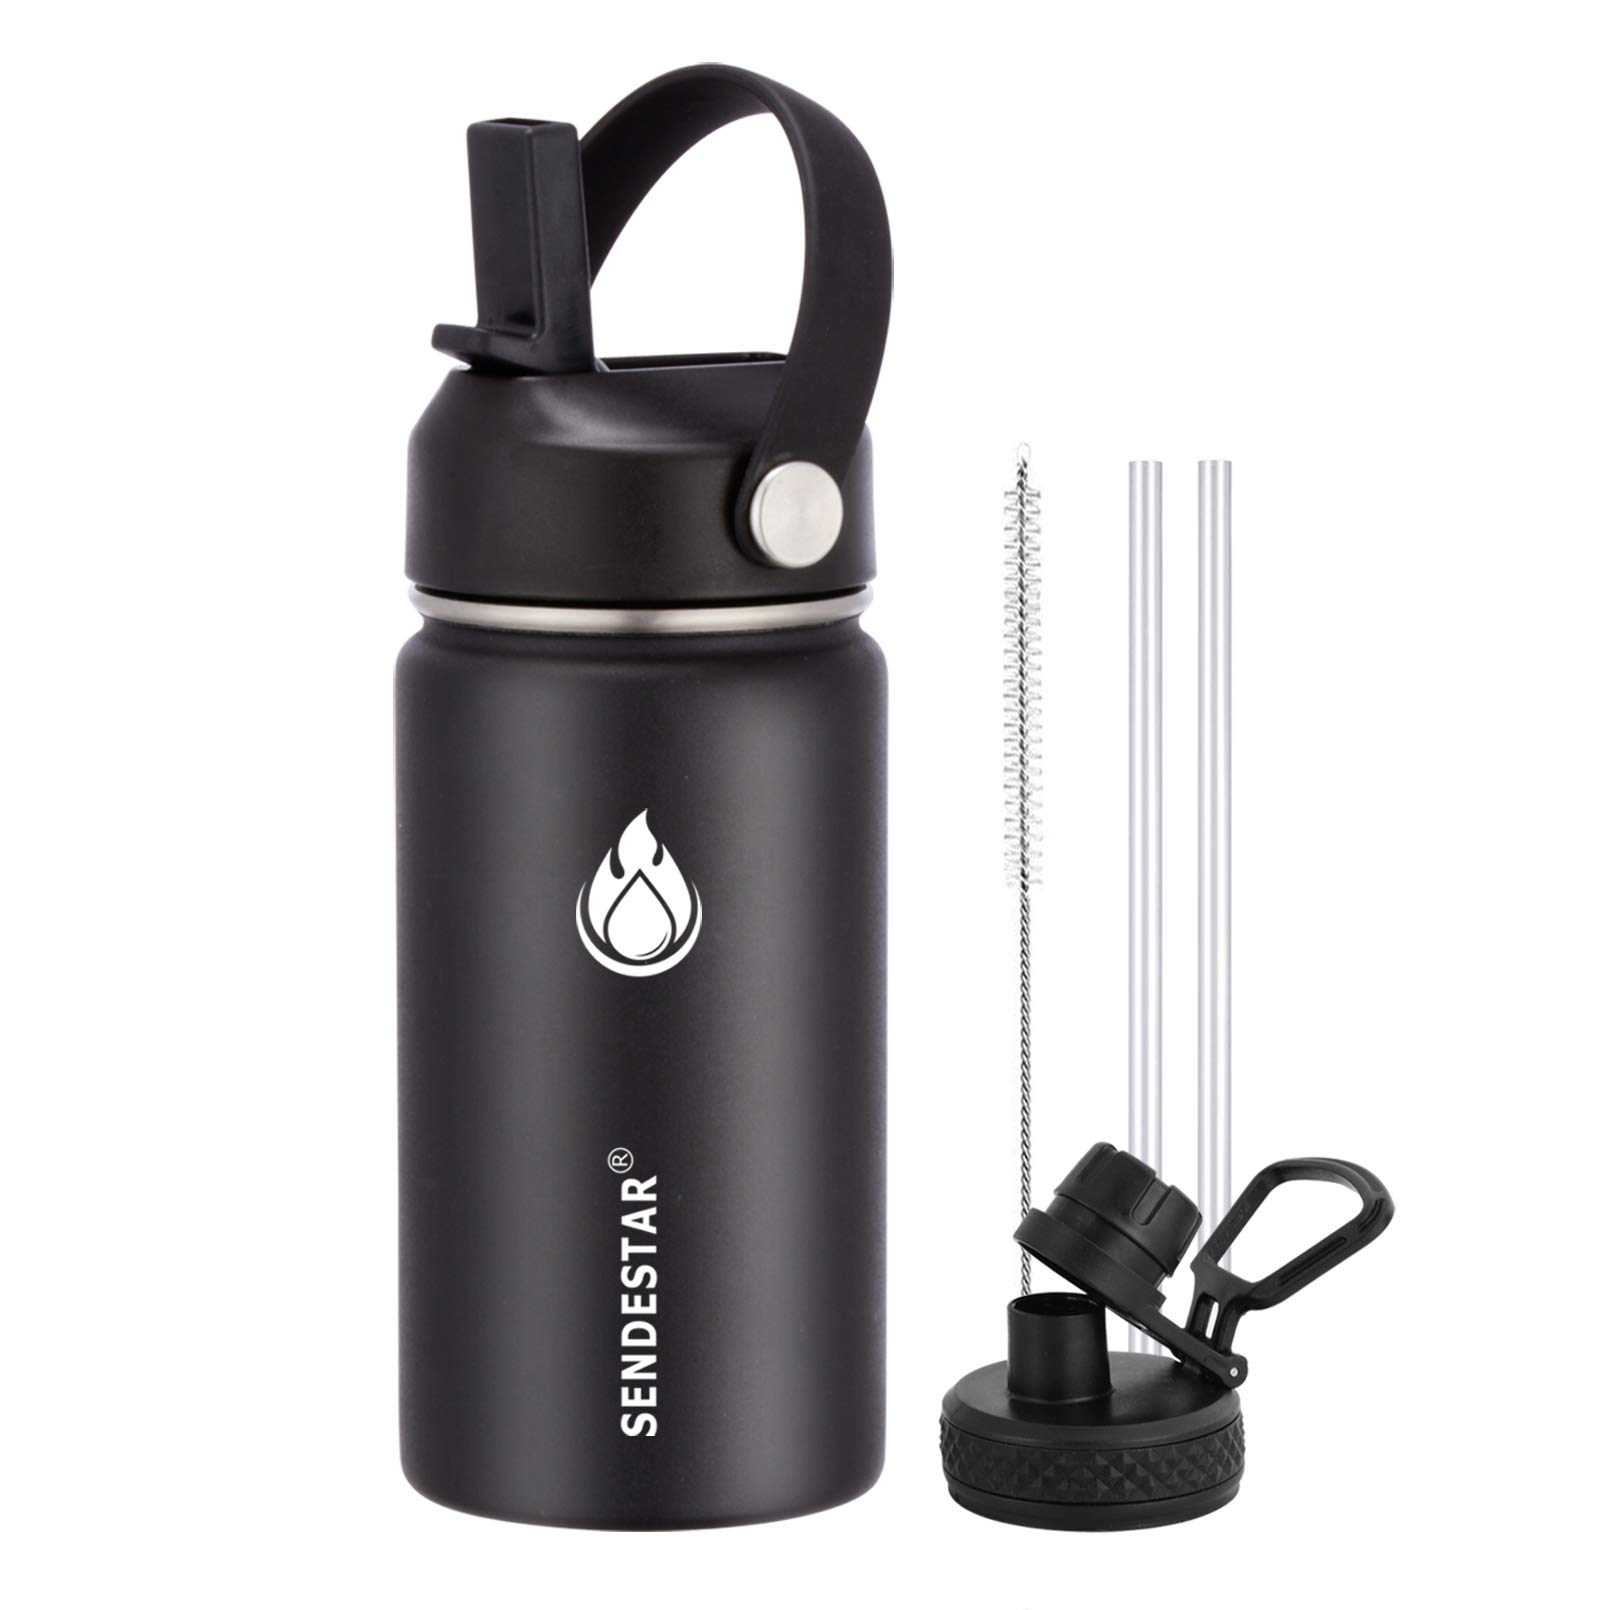 SENDESTAR Stainless Steel Water Bottle-12oz, 24oz, 40oz or 64oz with New Straw Lid and Spout Lid, Keeps Liquids Hot or Cold with Double Wall Vacuum Insulated Sweat Proof Sport Design (12 oz-Black)